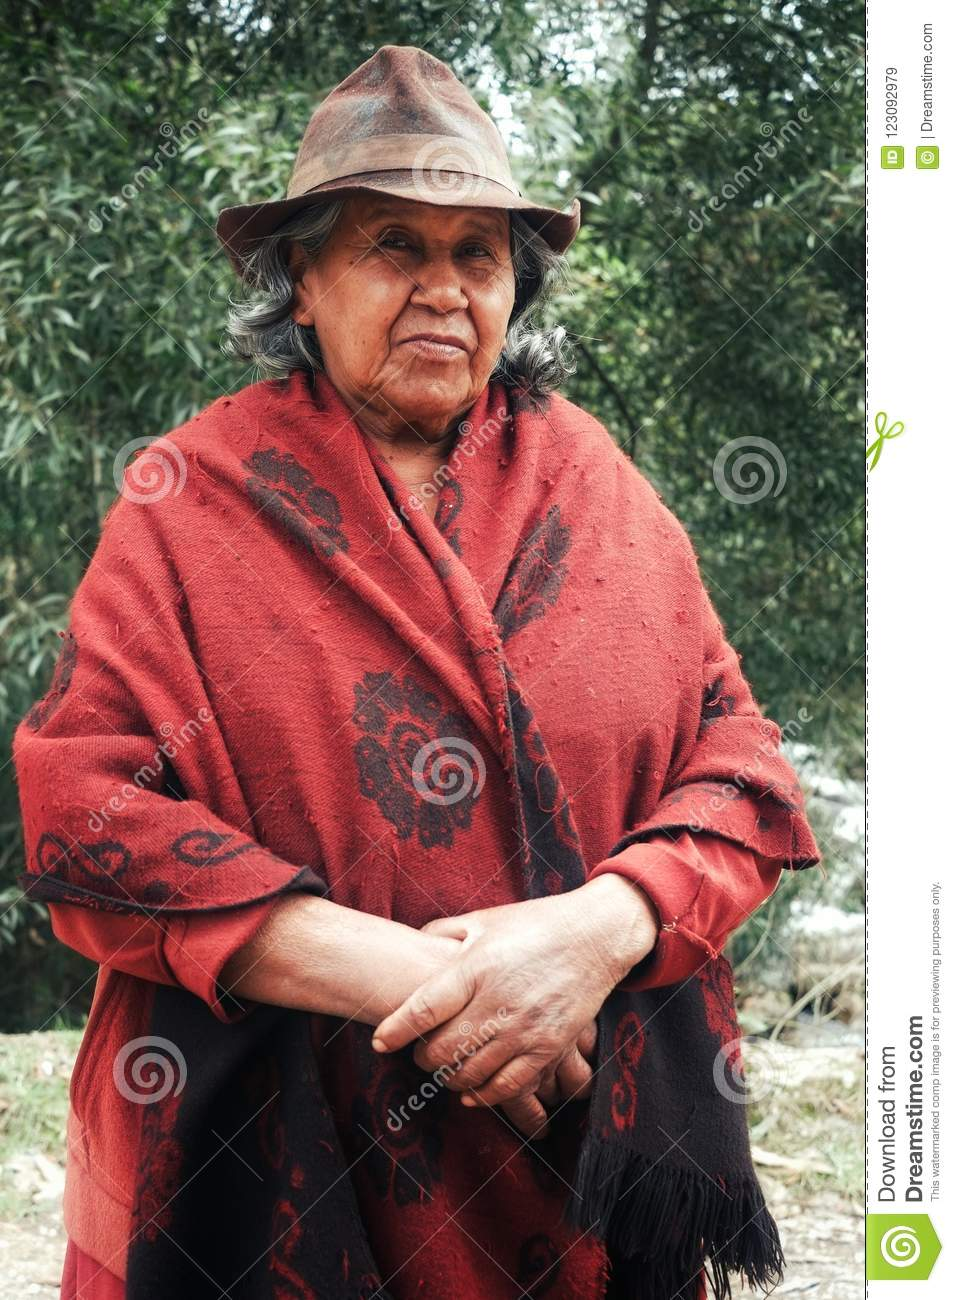 Lady in traditional hat and poncho in front of eucalyptus trees